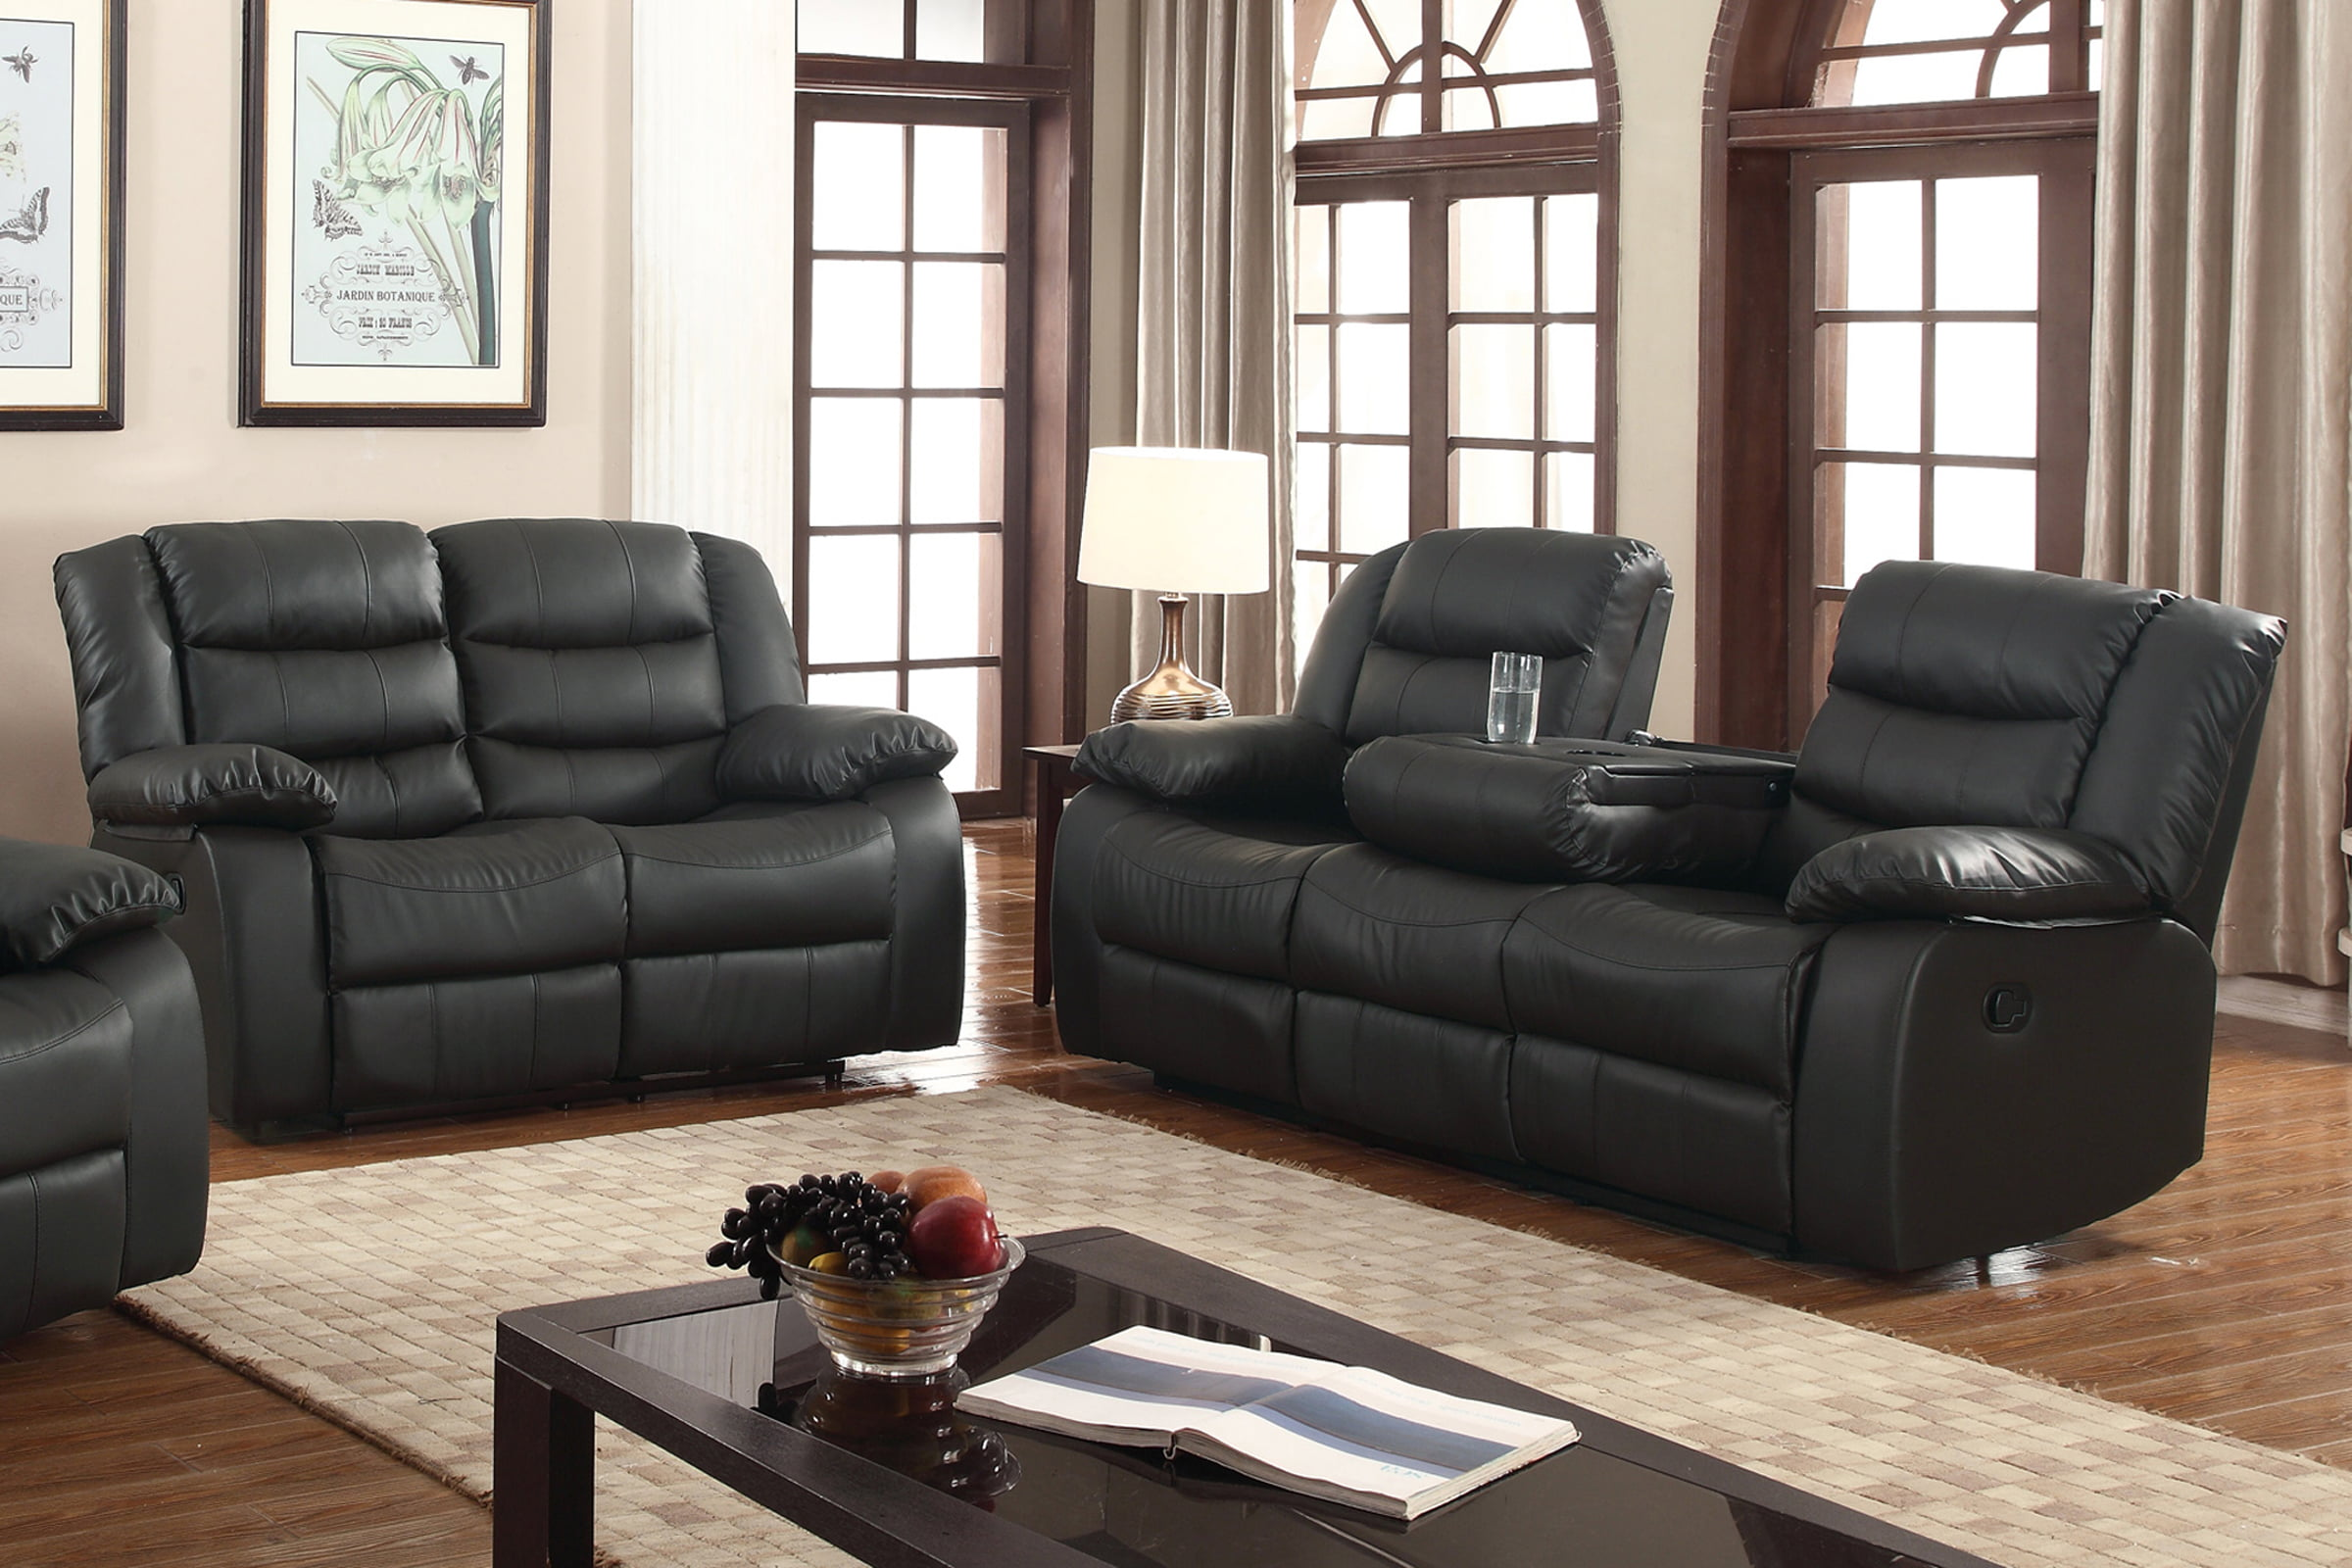 sofa & recliner sets